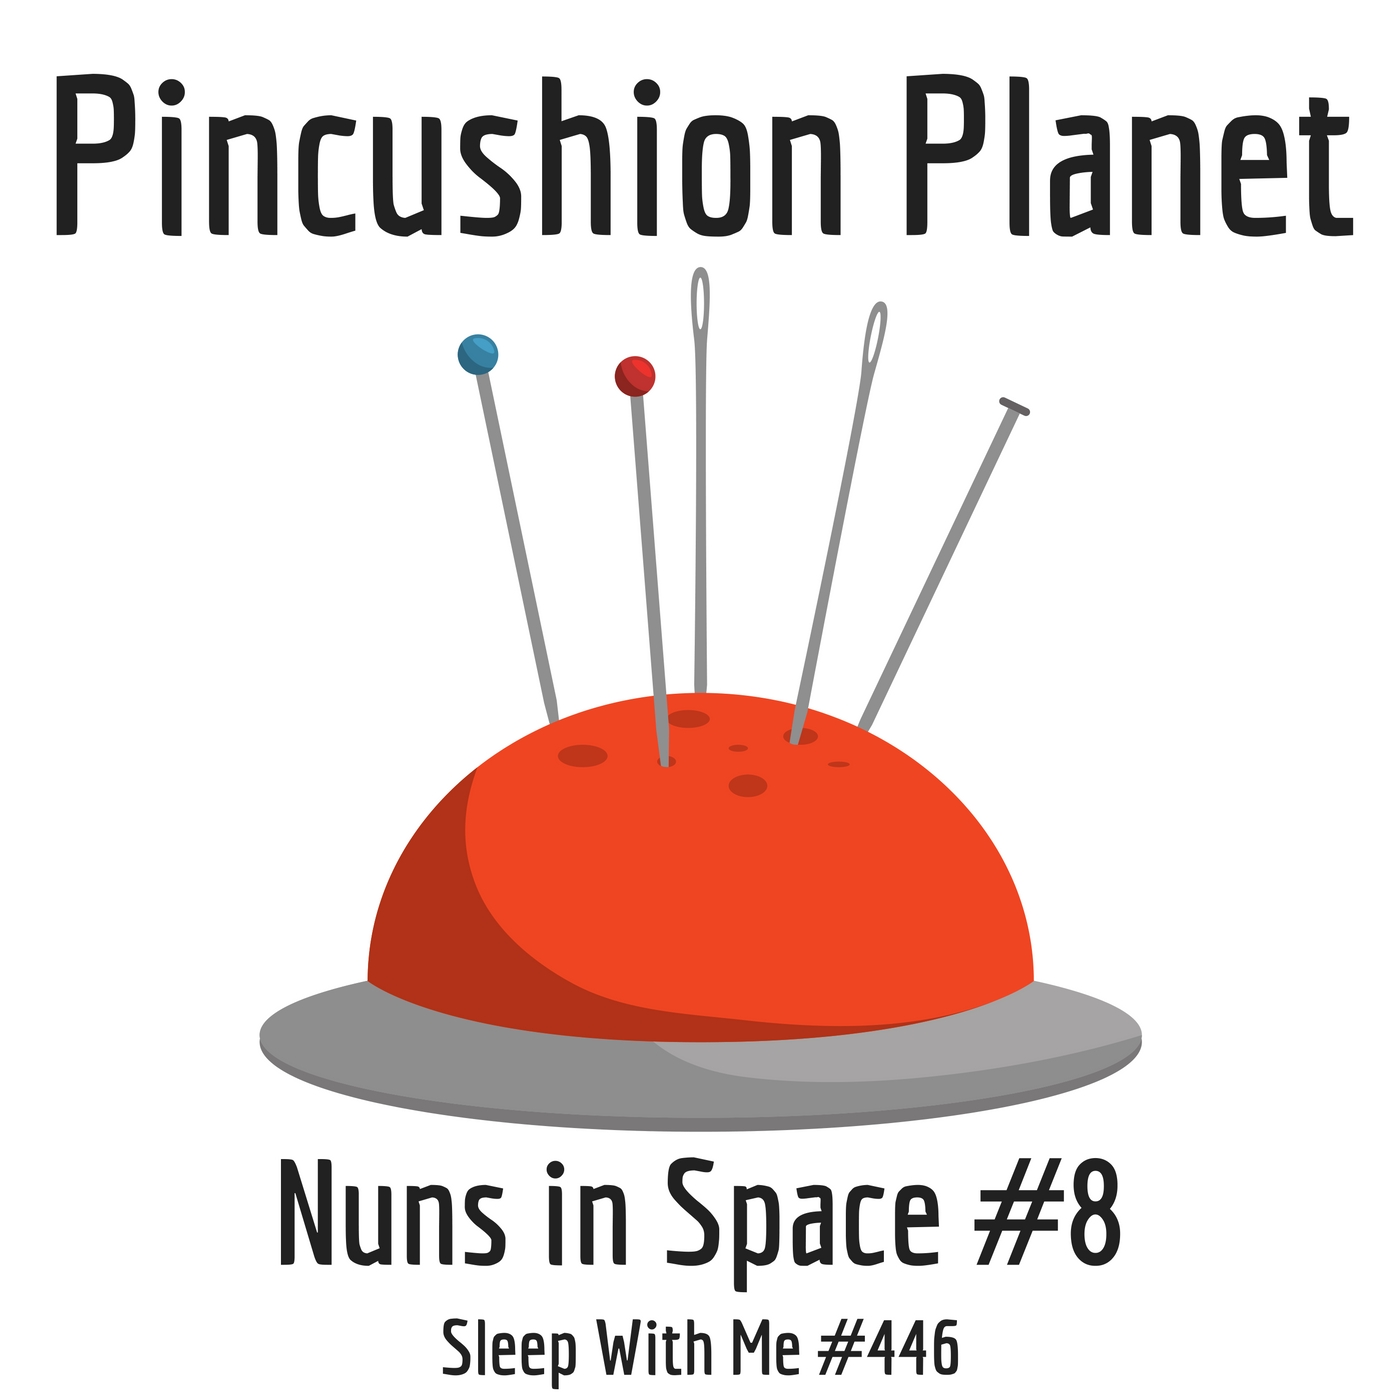 Pincushion Planet | Nuns in Space #8 | Sleep With #446